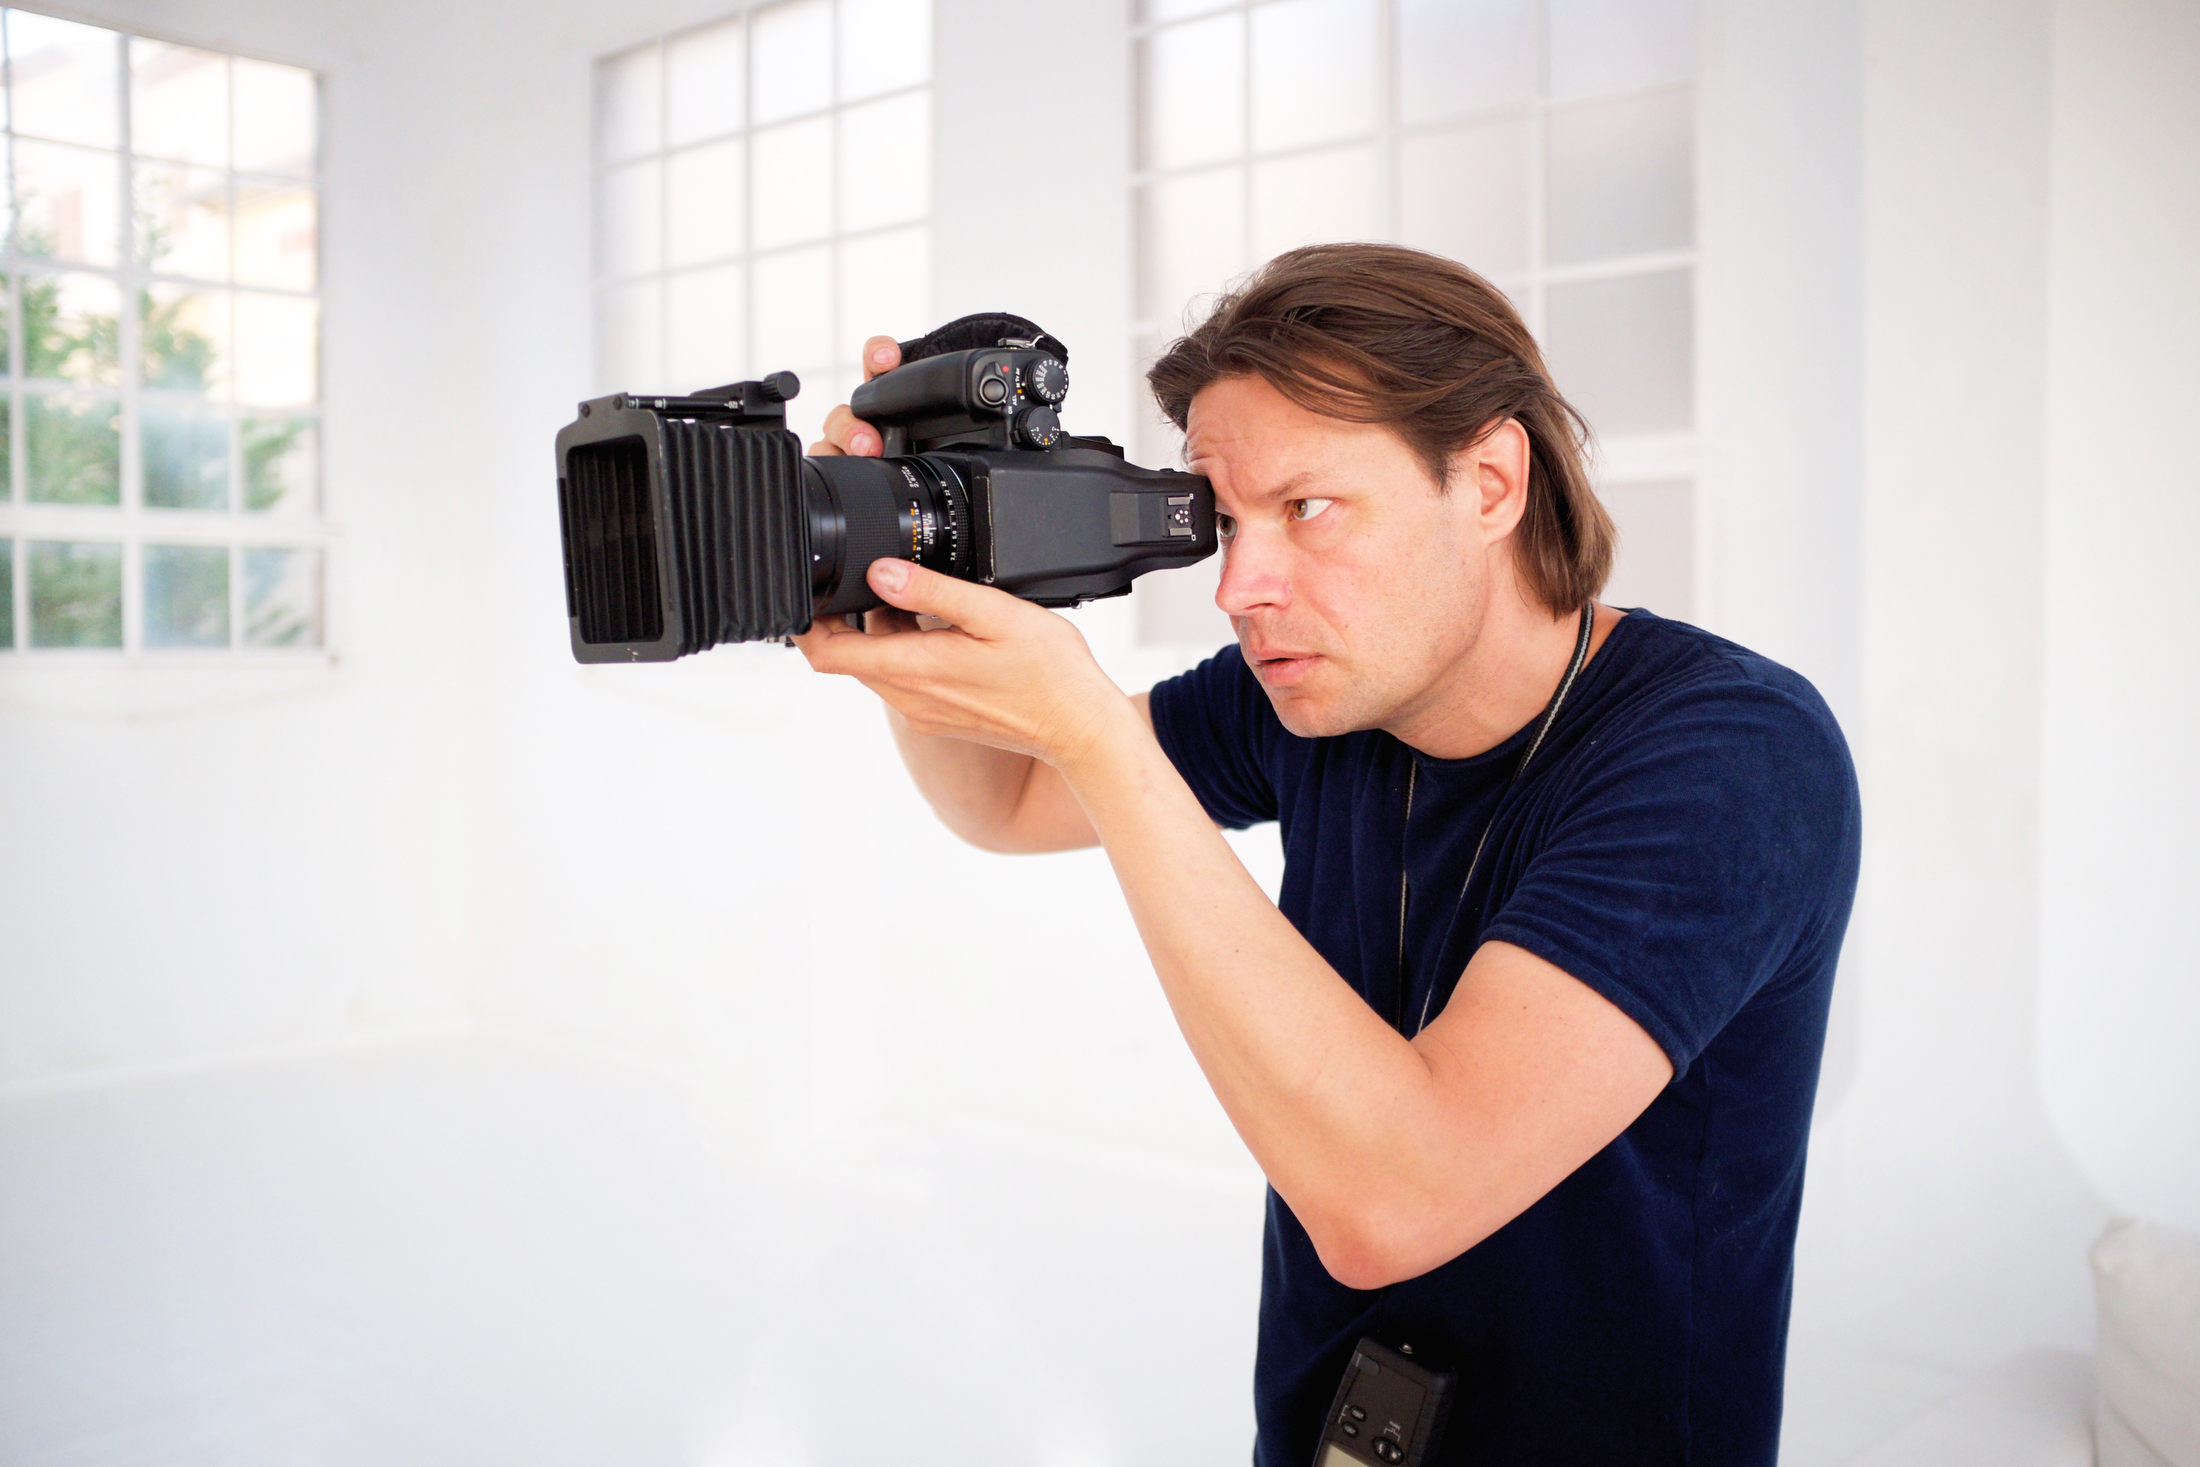 Oliver Brenneisen - Your award-winning photographer for CEO portraits and corporate photography. With over 25 years of international experience in the market.